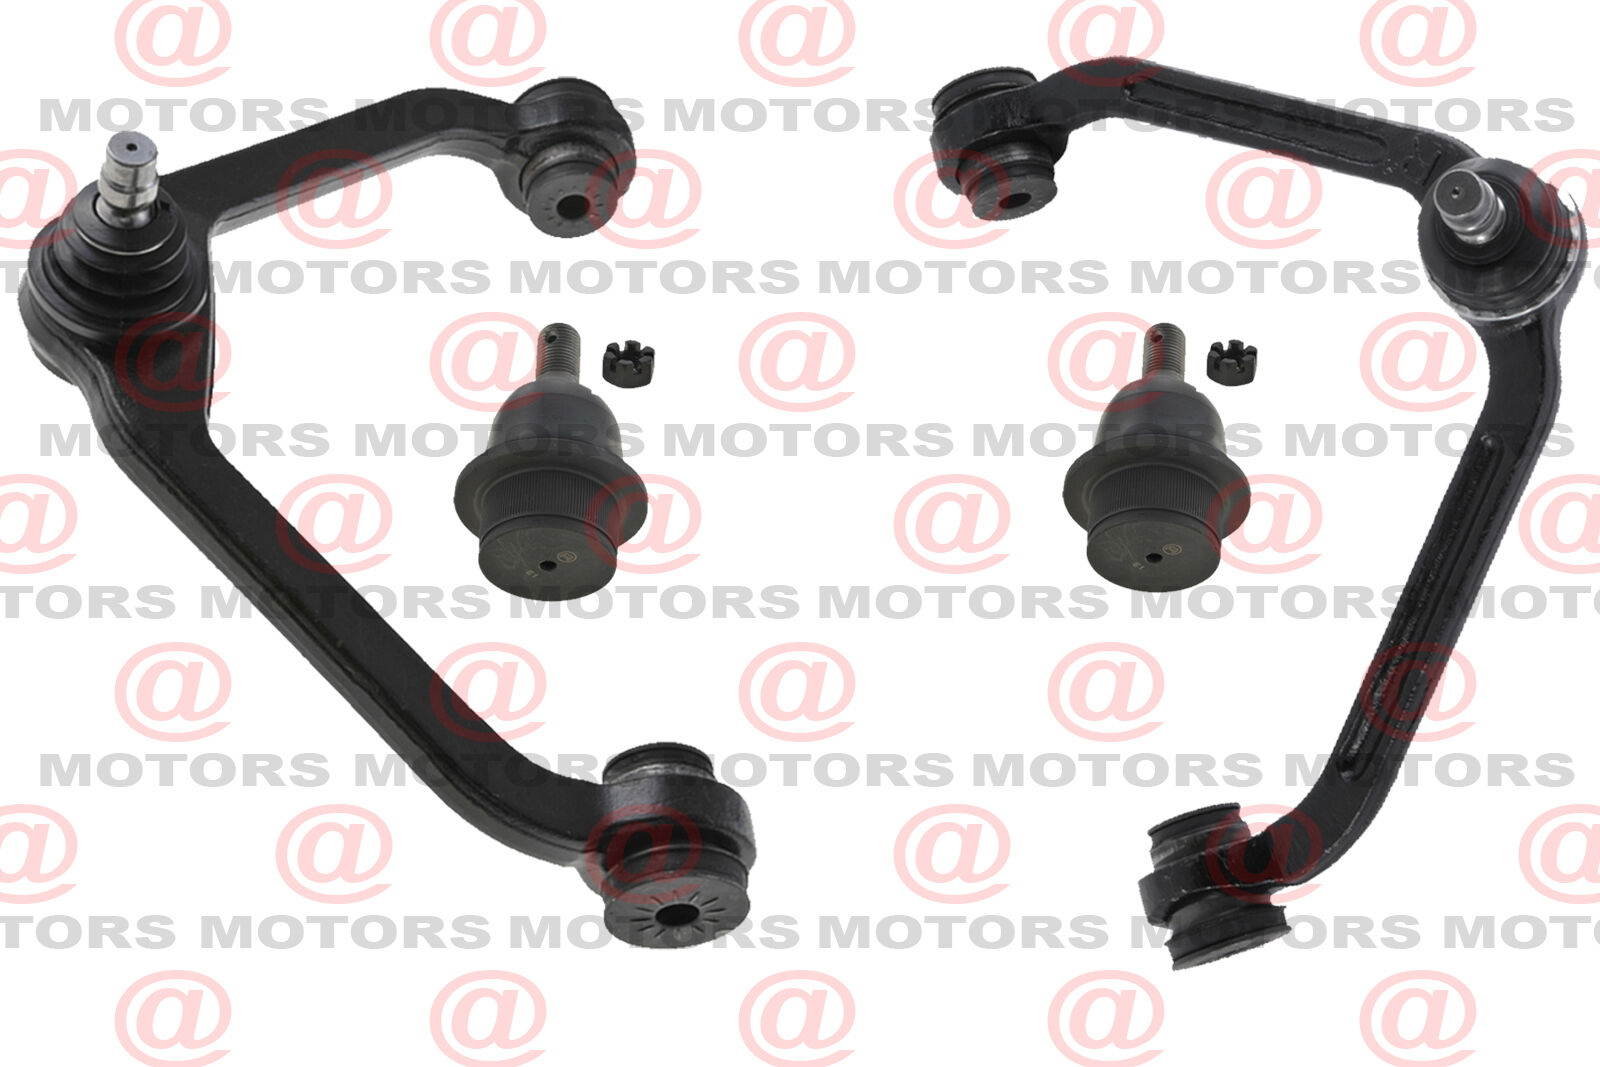 hight resolution of details about for ford explorer 95 03 front left right lower ball joints upper control arm